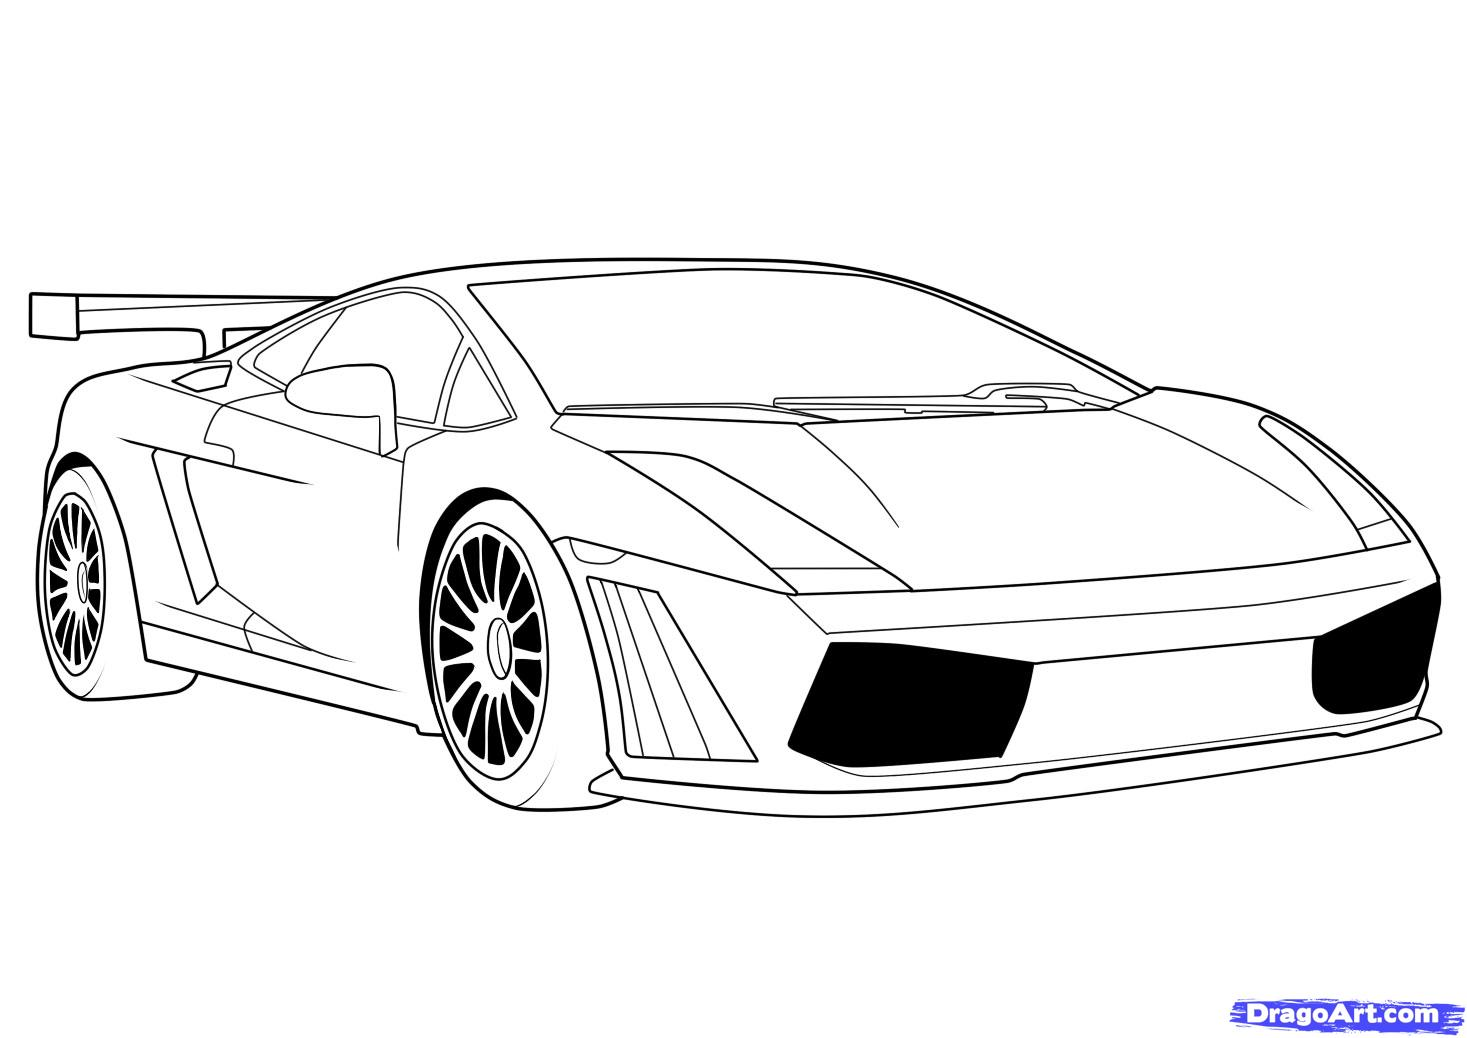 Drawn vehicle lamborghini A How 8 to lamborghini